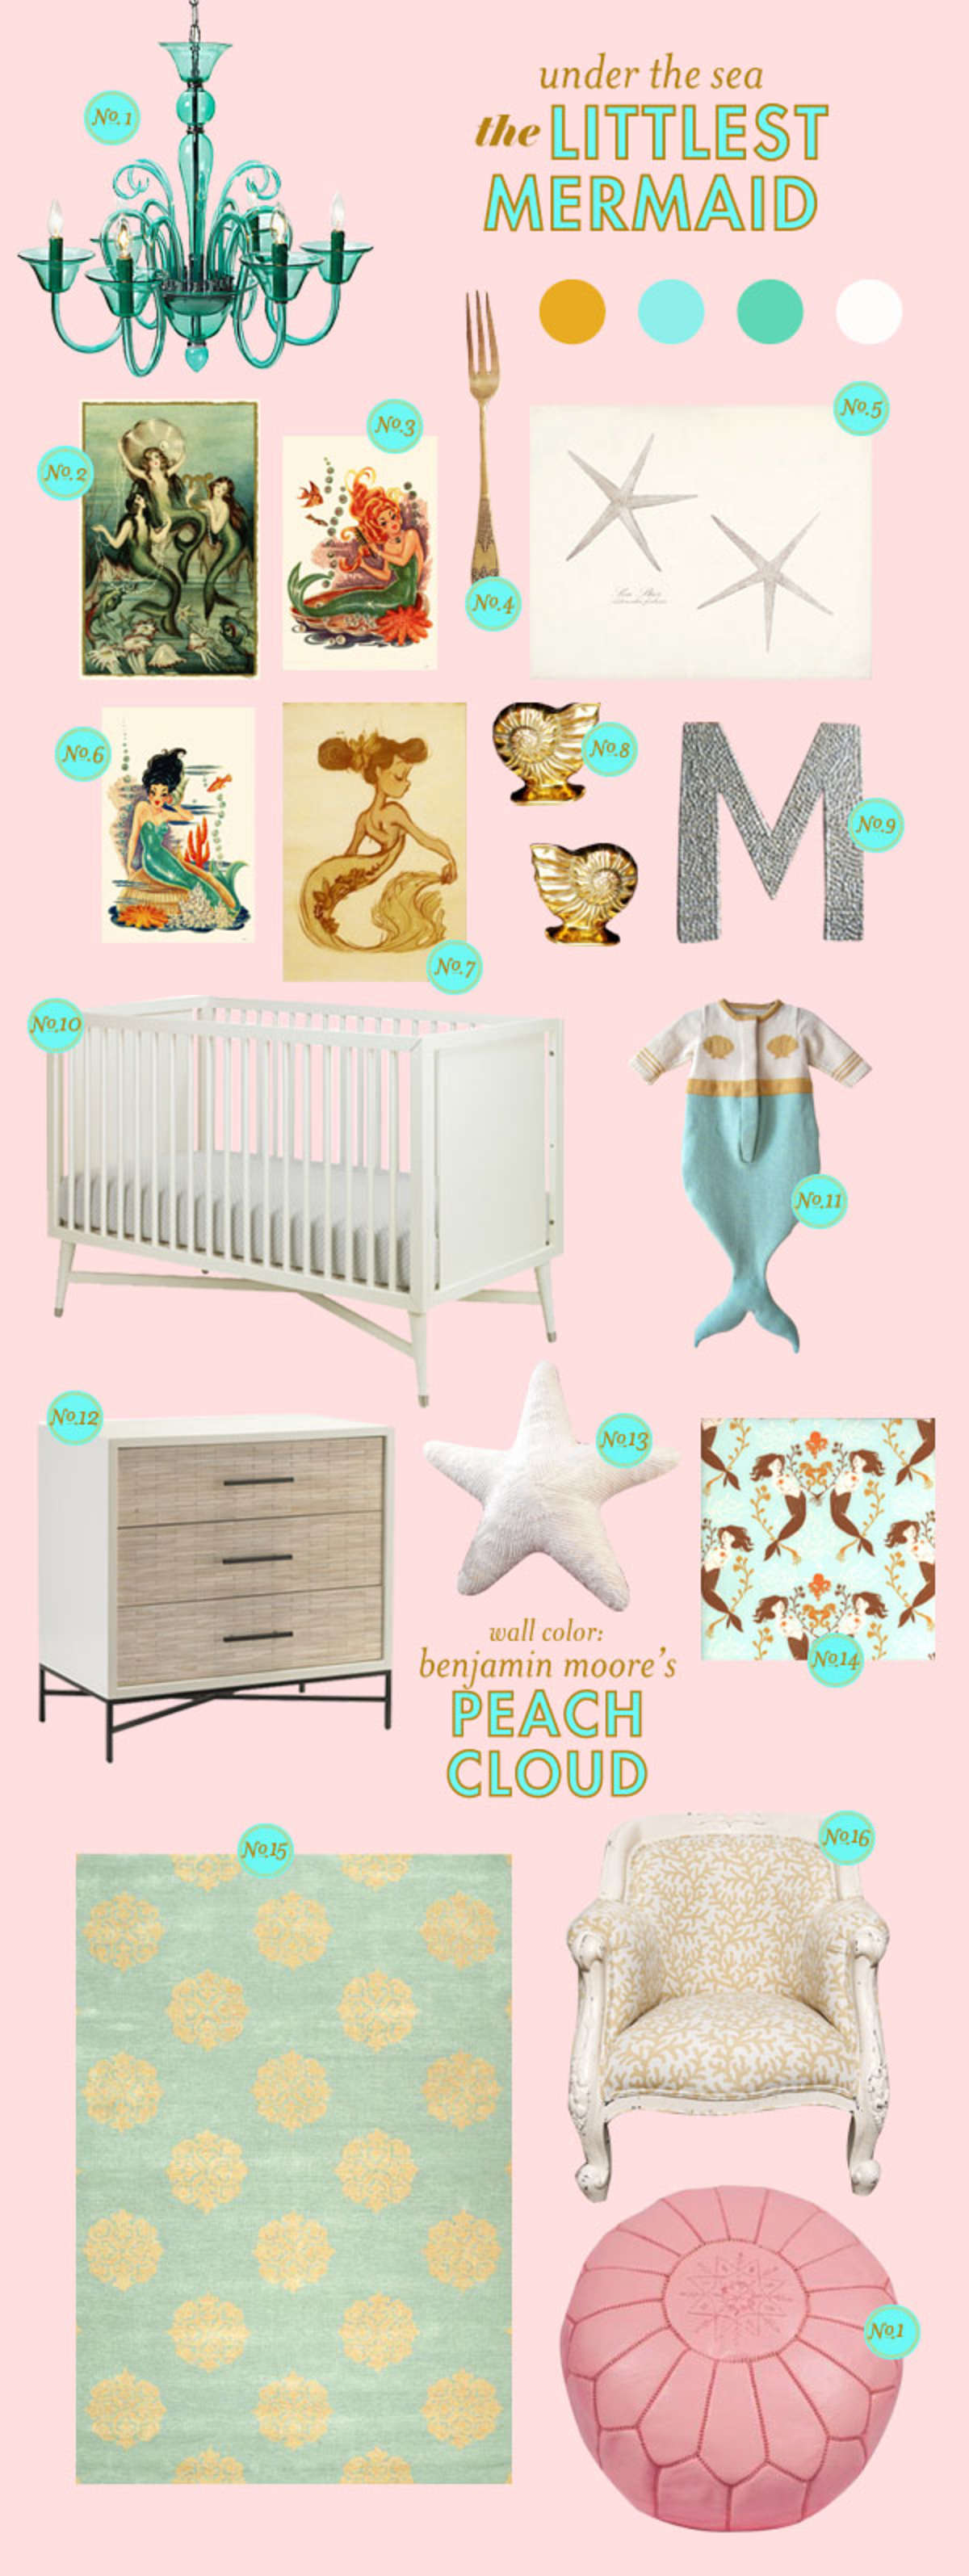 mermaid baby room ideas